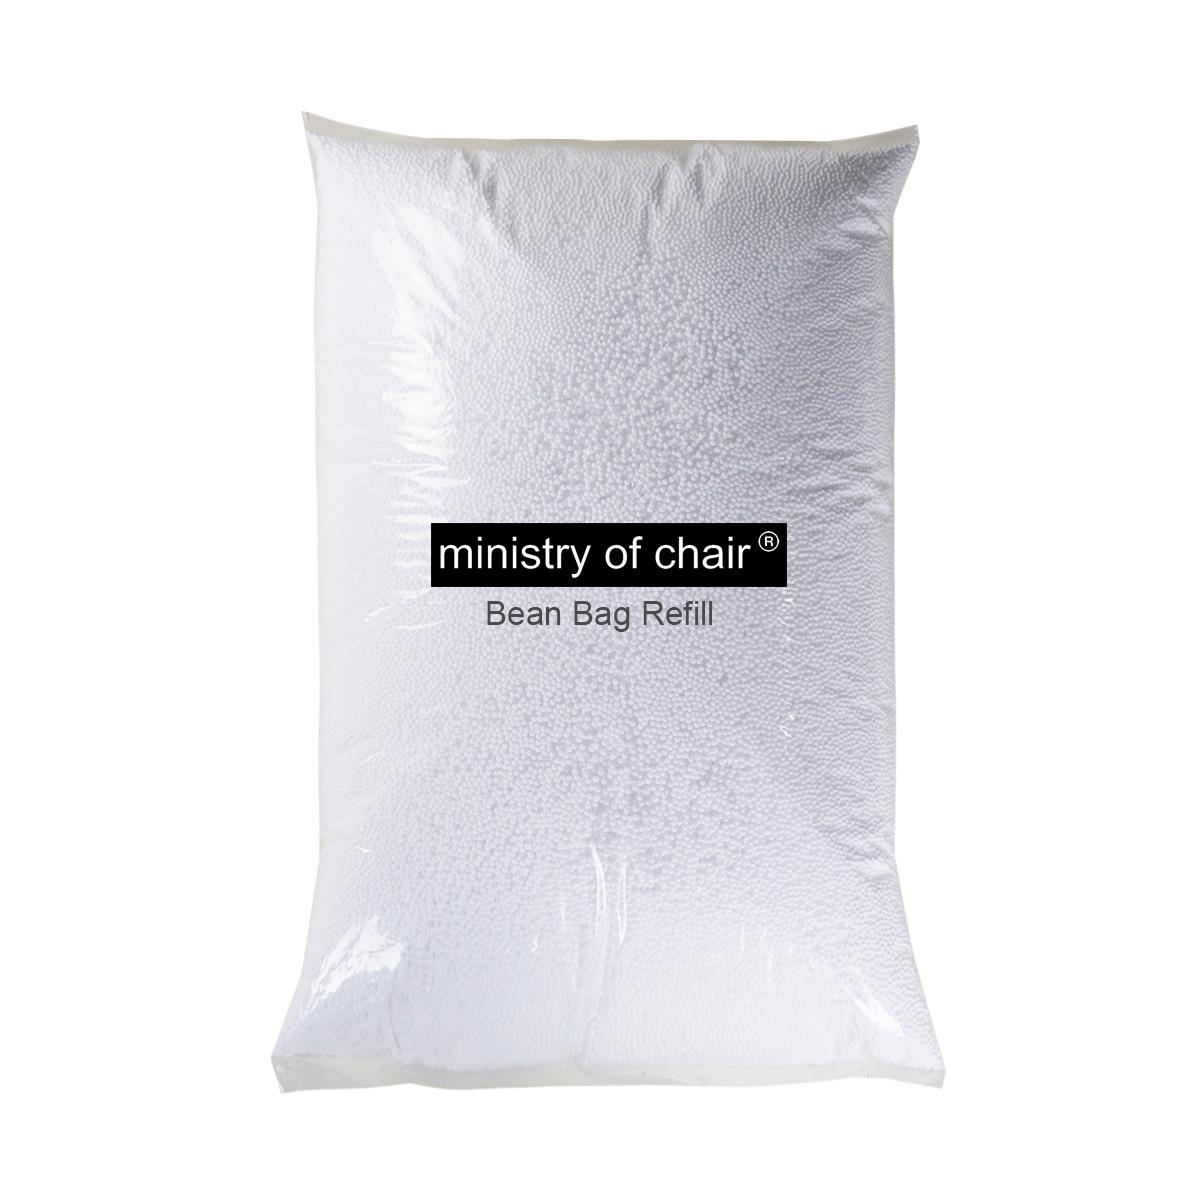 Ministry Of Chair Bean Bag Refill 70l Extra Large Bag By Nsgi Furniture Group Pte. Ltd..